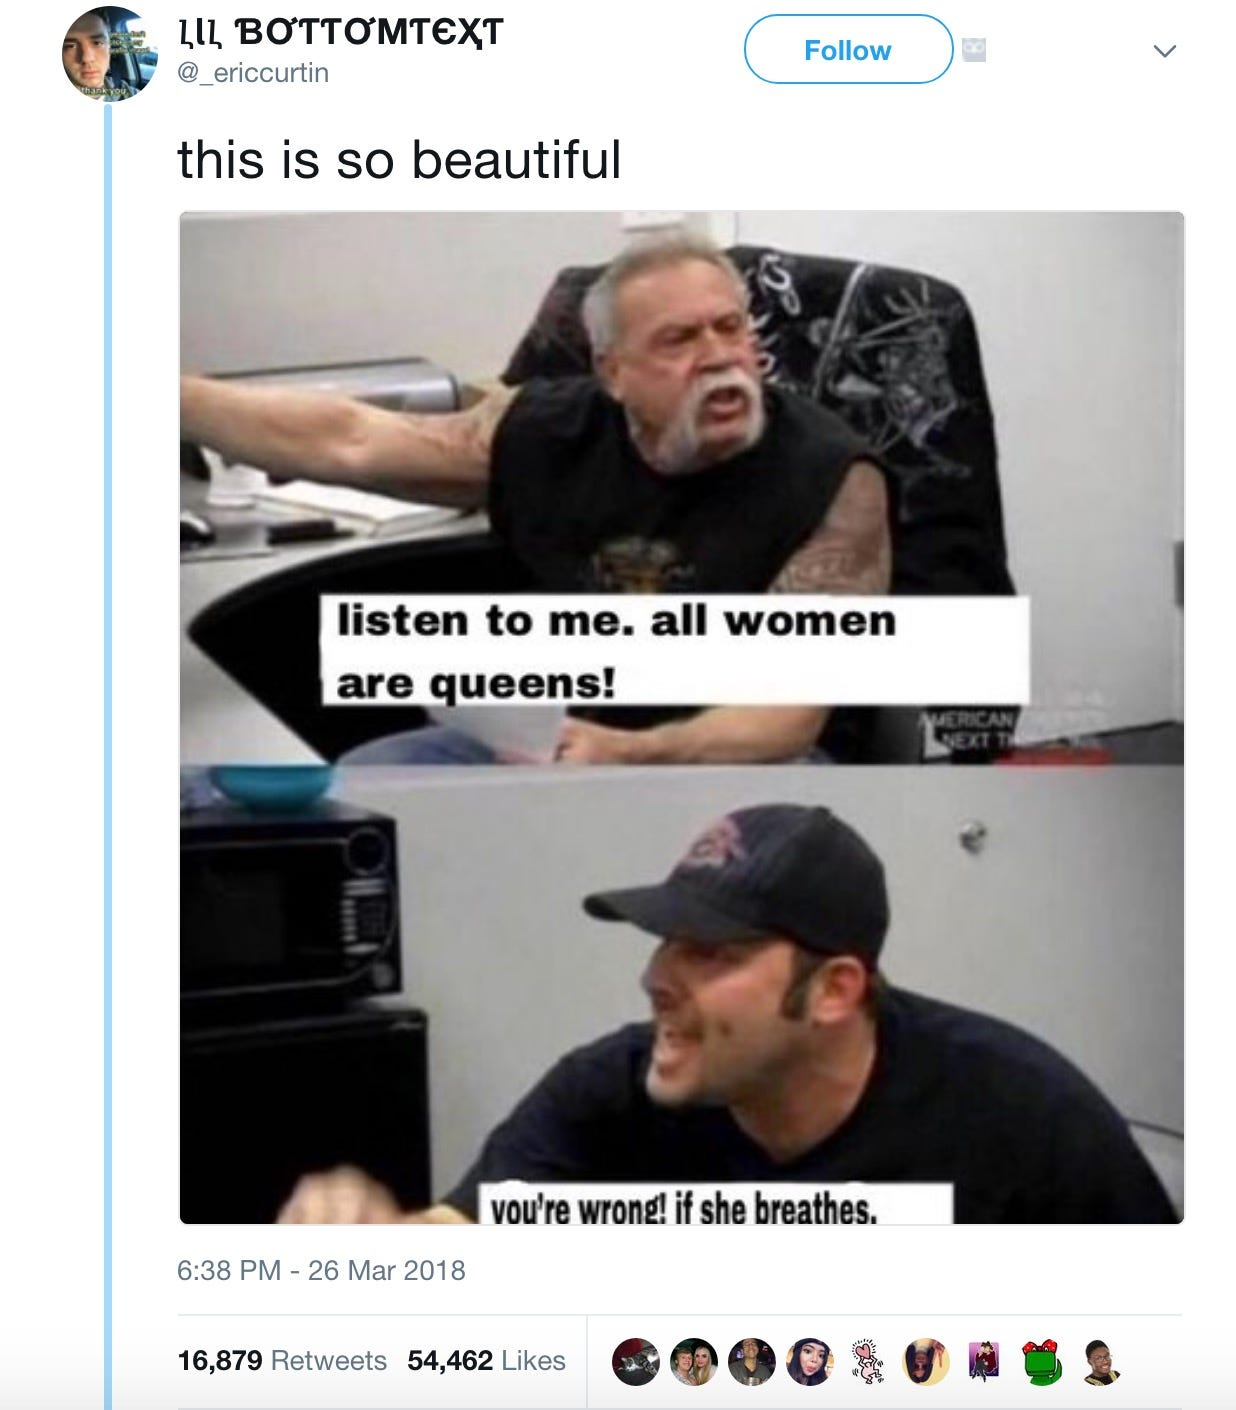 636586036273036312 Screen Shot 2018 04 06 at 9.26.55 AM the 'american chopper' meme featuring paul teutul and son, explained